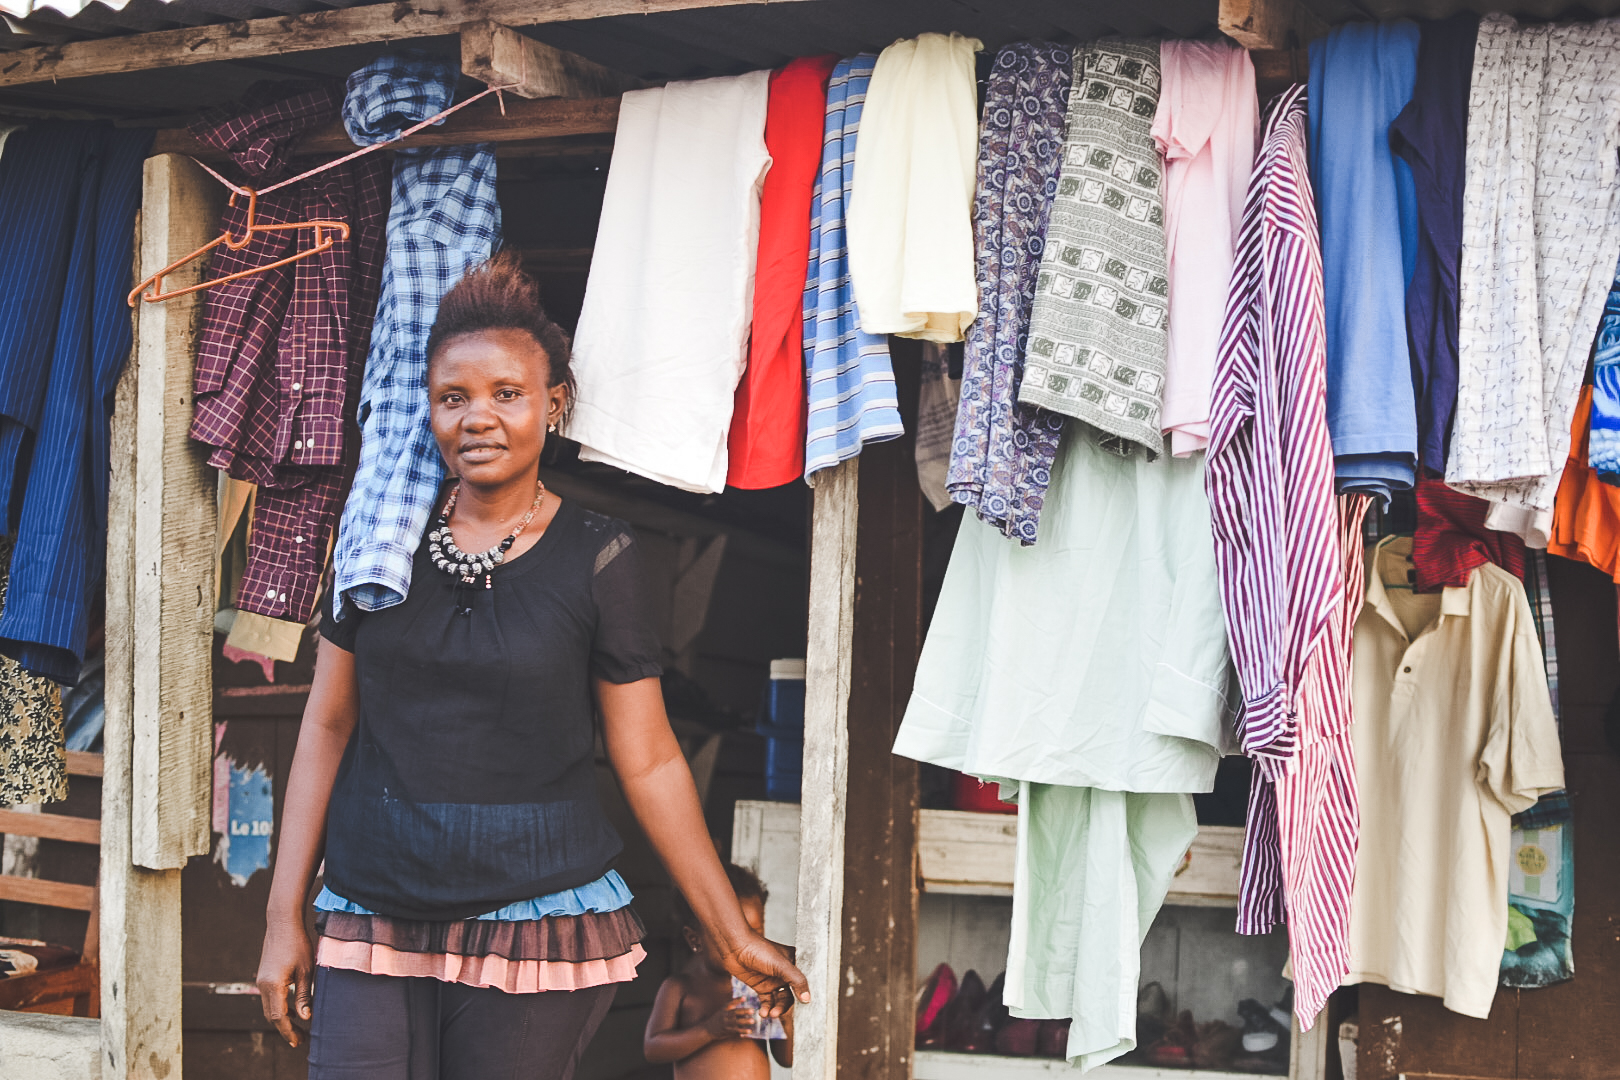 Mariam participated in TVL's entrepreneurial mentorship program. Today she has her own used clothing store. She also purchases palm oil from local farmers in Golu to resell in the Bo market. She's passionate about business and feels proud to be able to help support her family.